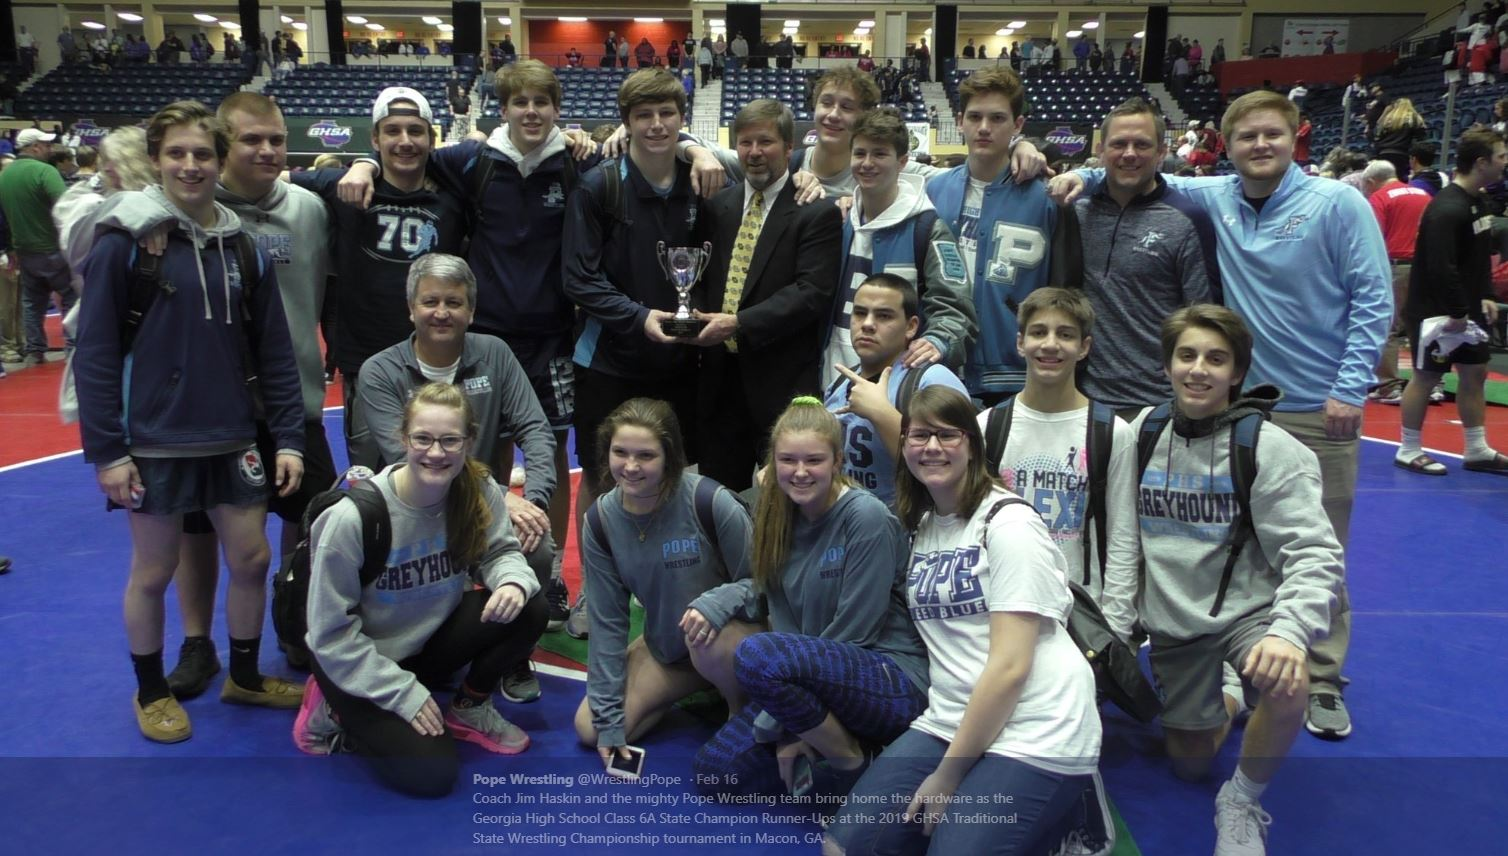 Wrestling 2nd at State Traditional-7 Wrestlers on Podium